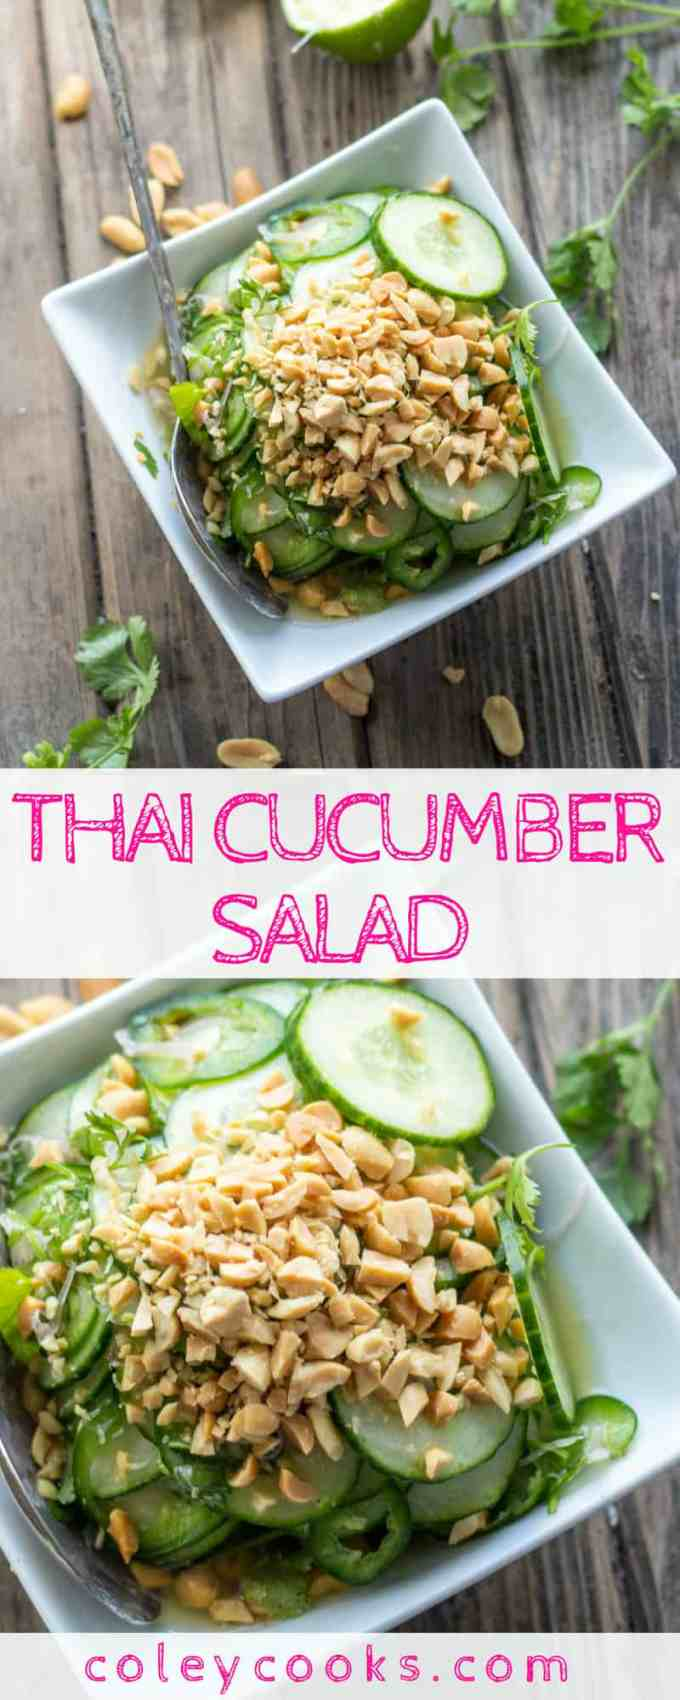 THAI CUCUMBER SALAD   This easy summer salad recipe is light, crisp, and loaded with Thai flavor! Spicy from jalapeños and great crunch from roasted peanuts. #plantbased #recipe #Thai #cucumber #salad #summer   ColeyCooks.com